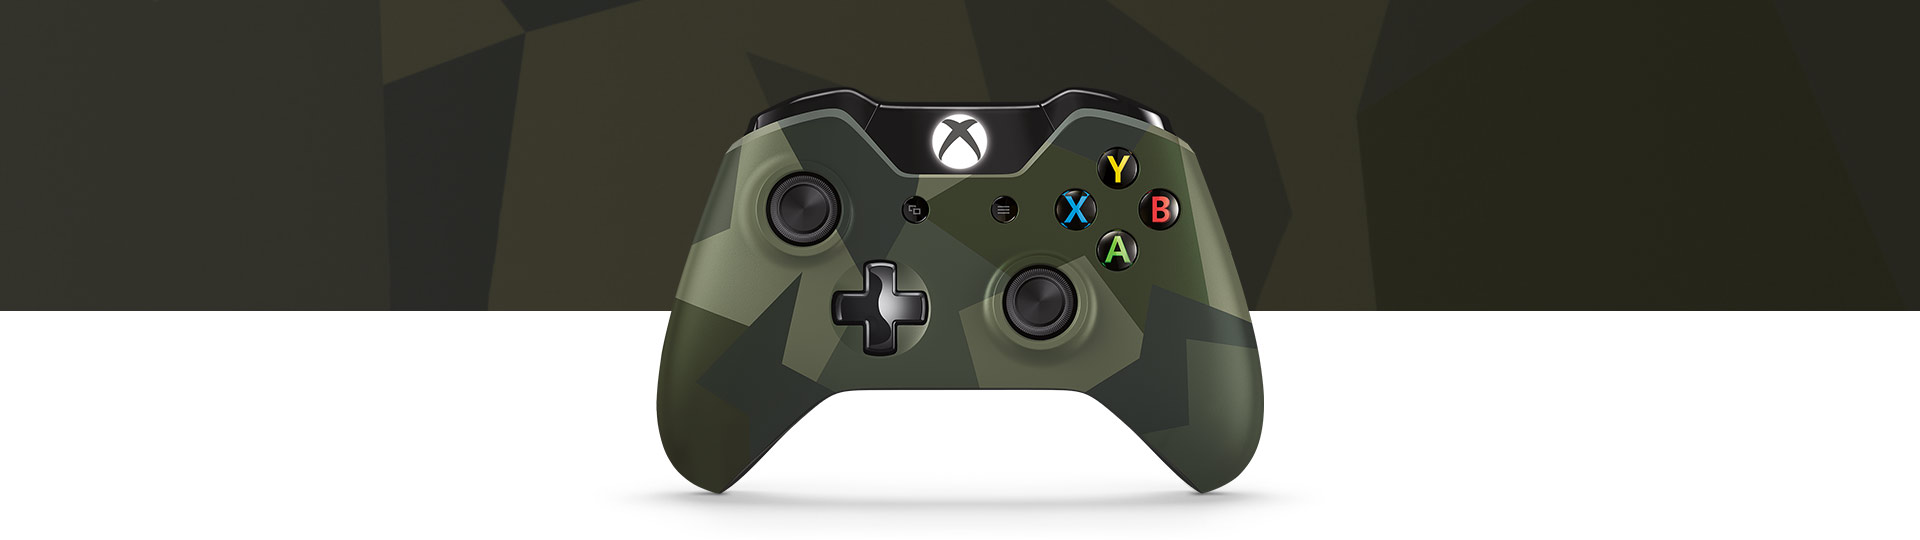 Xbox Controller Diagram In Color - wiring data